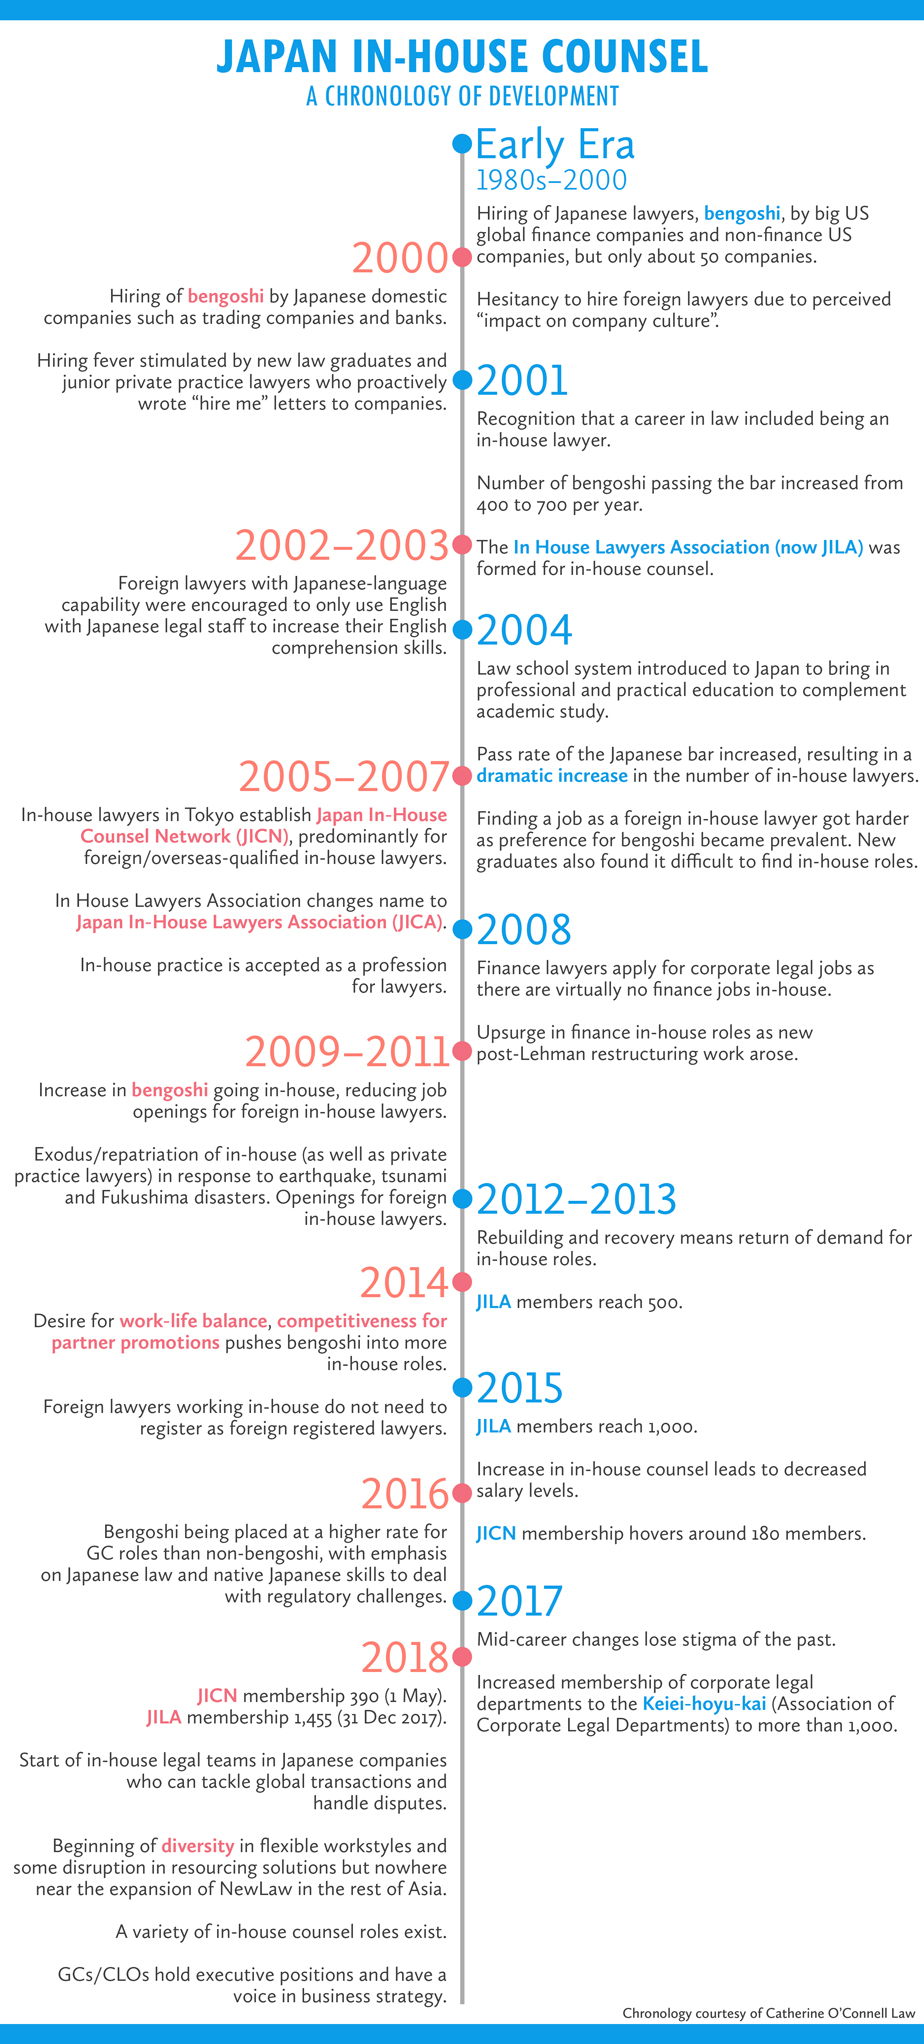 Japan-In-house-Counsel-timeline